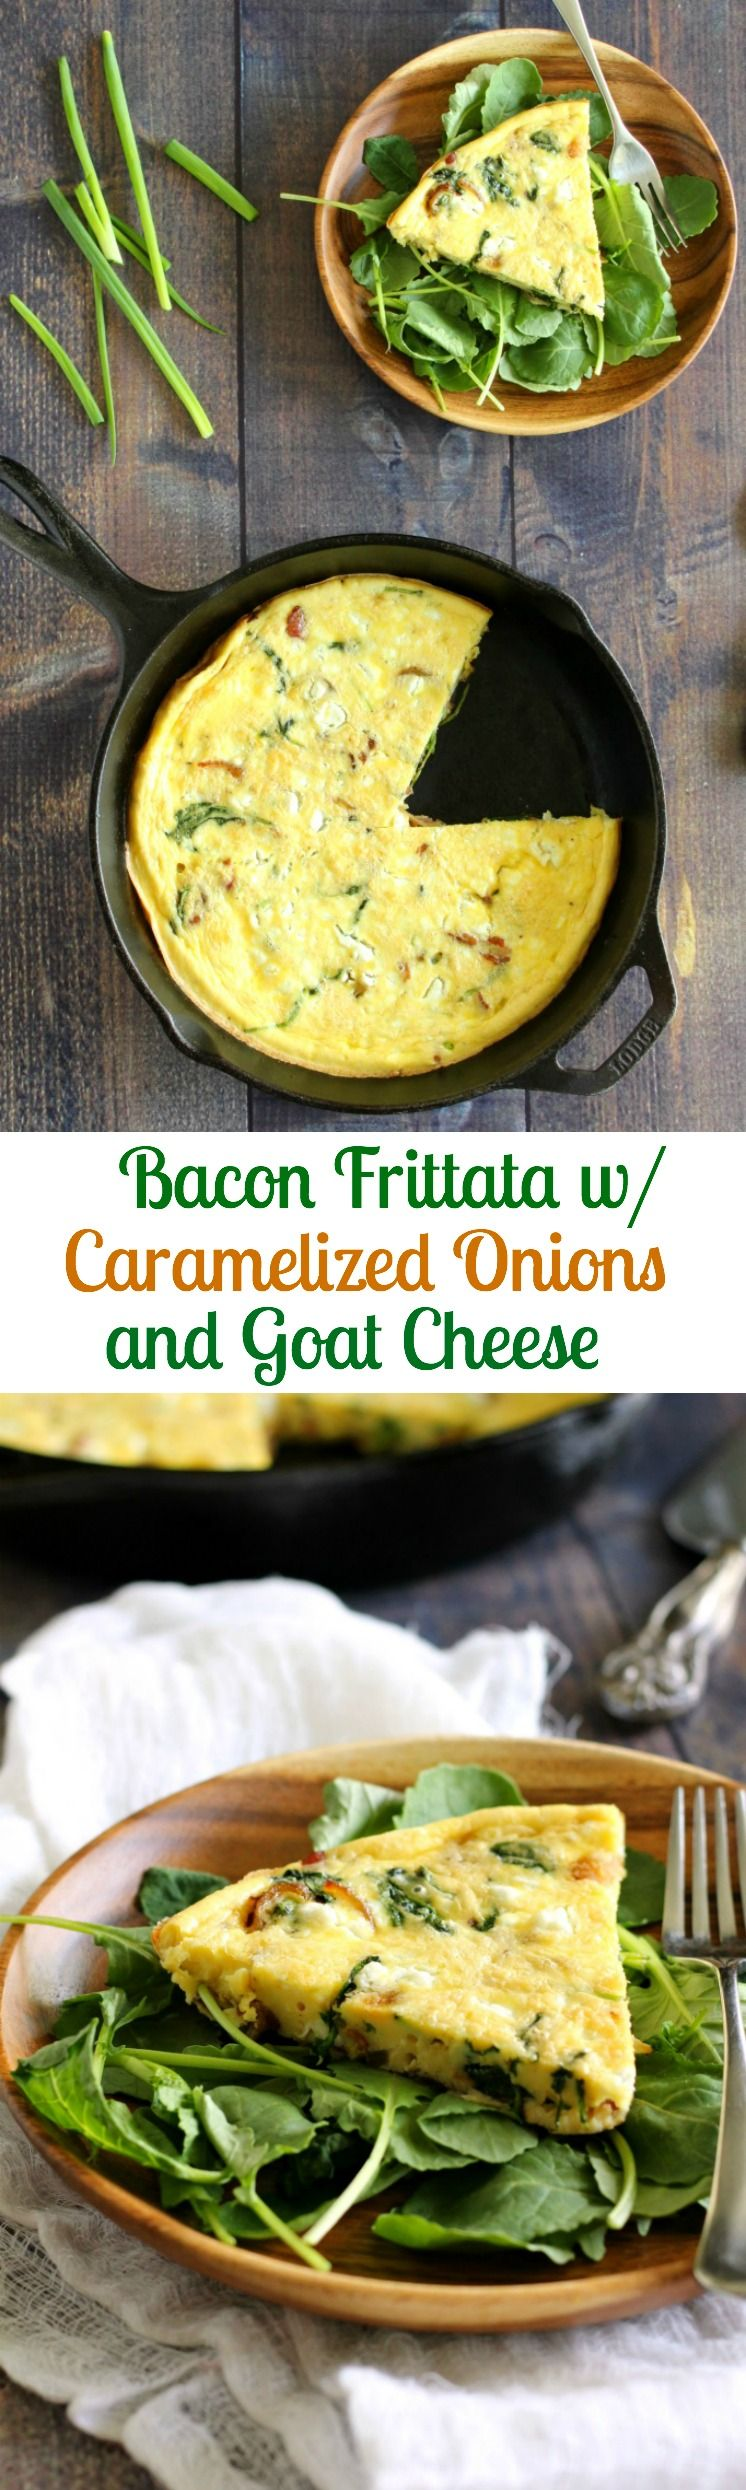 Bacon Frittata with Caramelized Onions & Goat Cheese (Low Carb & Primal) #baconfrittata